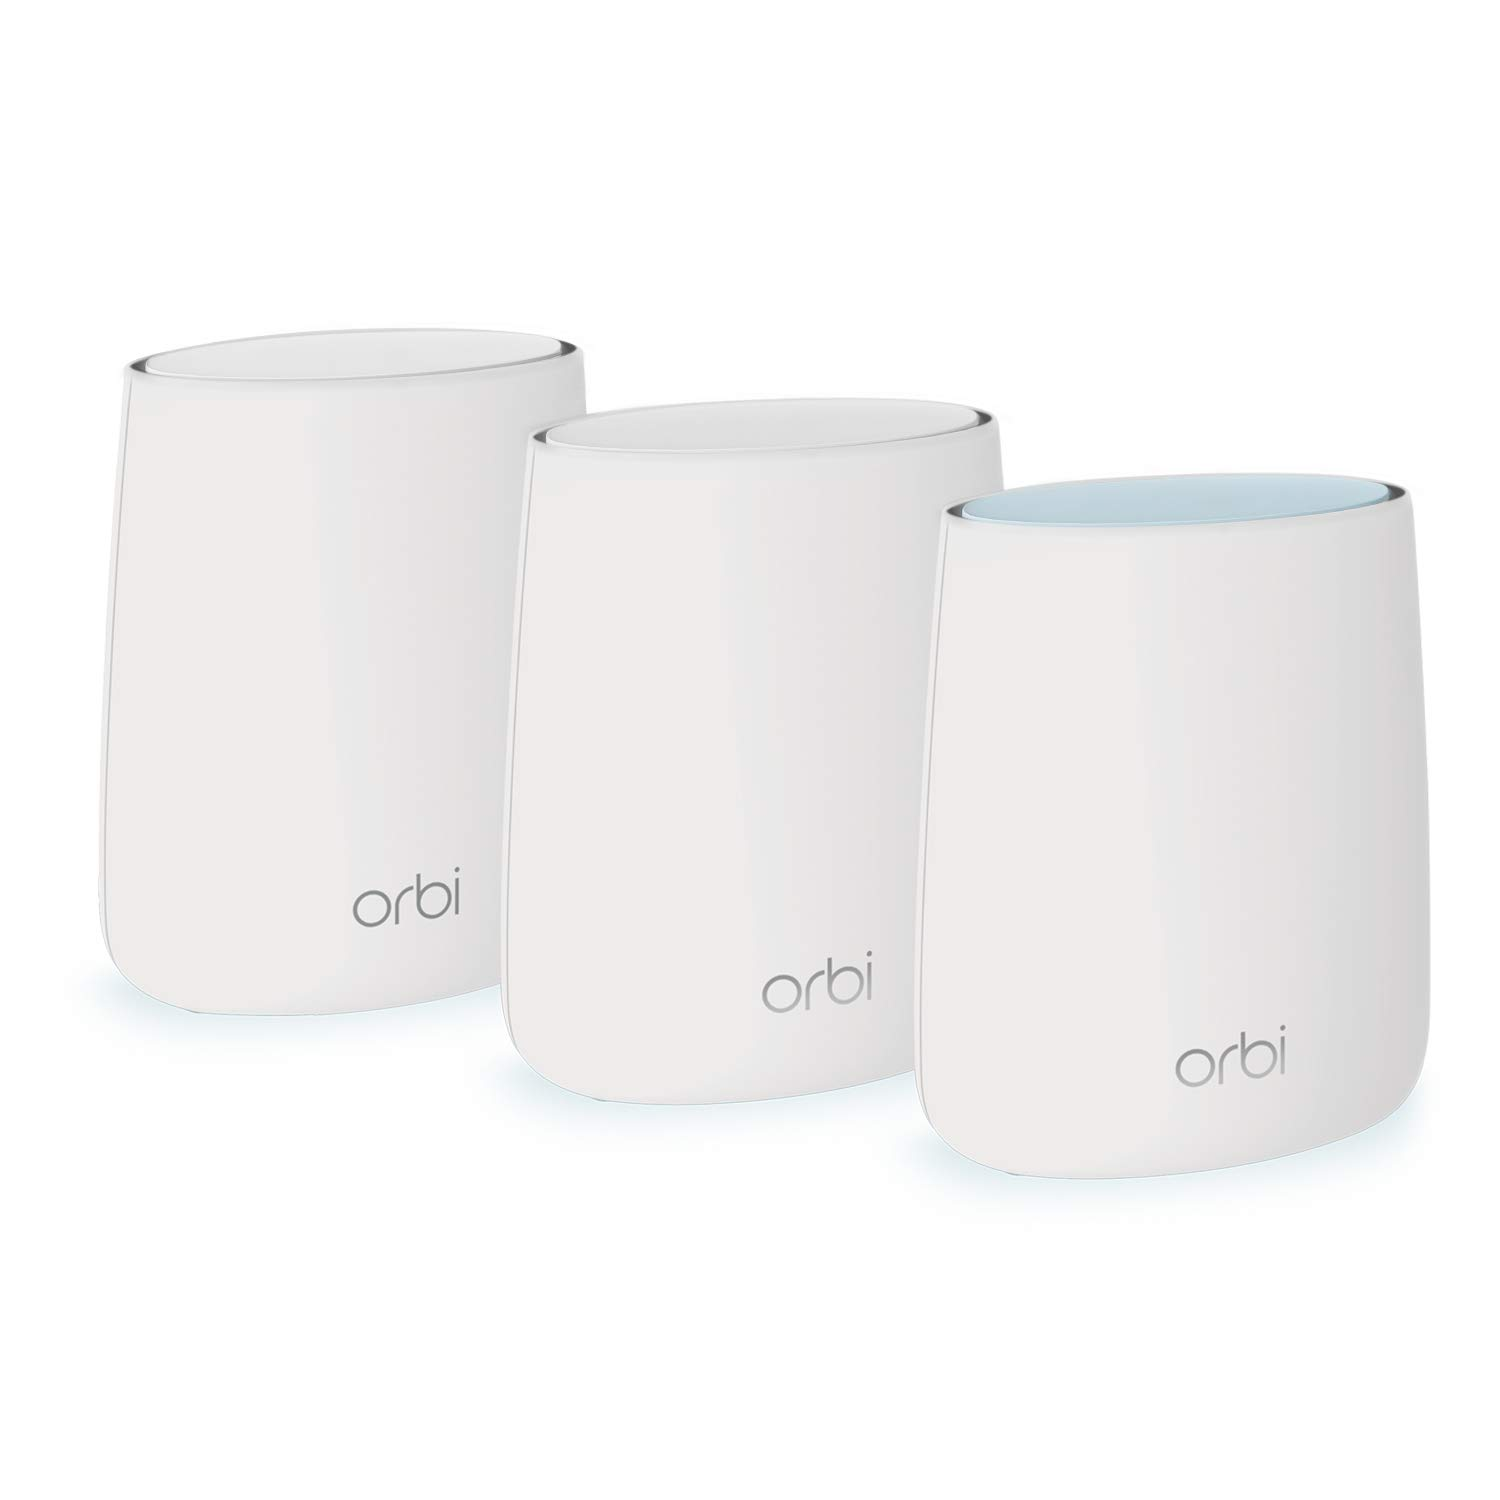 NETGEAR Orbi Whole Home Mesh Wi-Fi System - Wi-Fi Router and 2 Satellite Extenders with Speeds Up-to 2.2 Gbps Over 4,500 sq ft, AC2200 (RBK23)